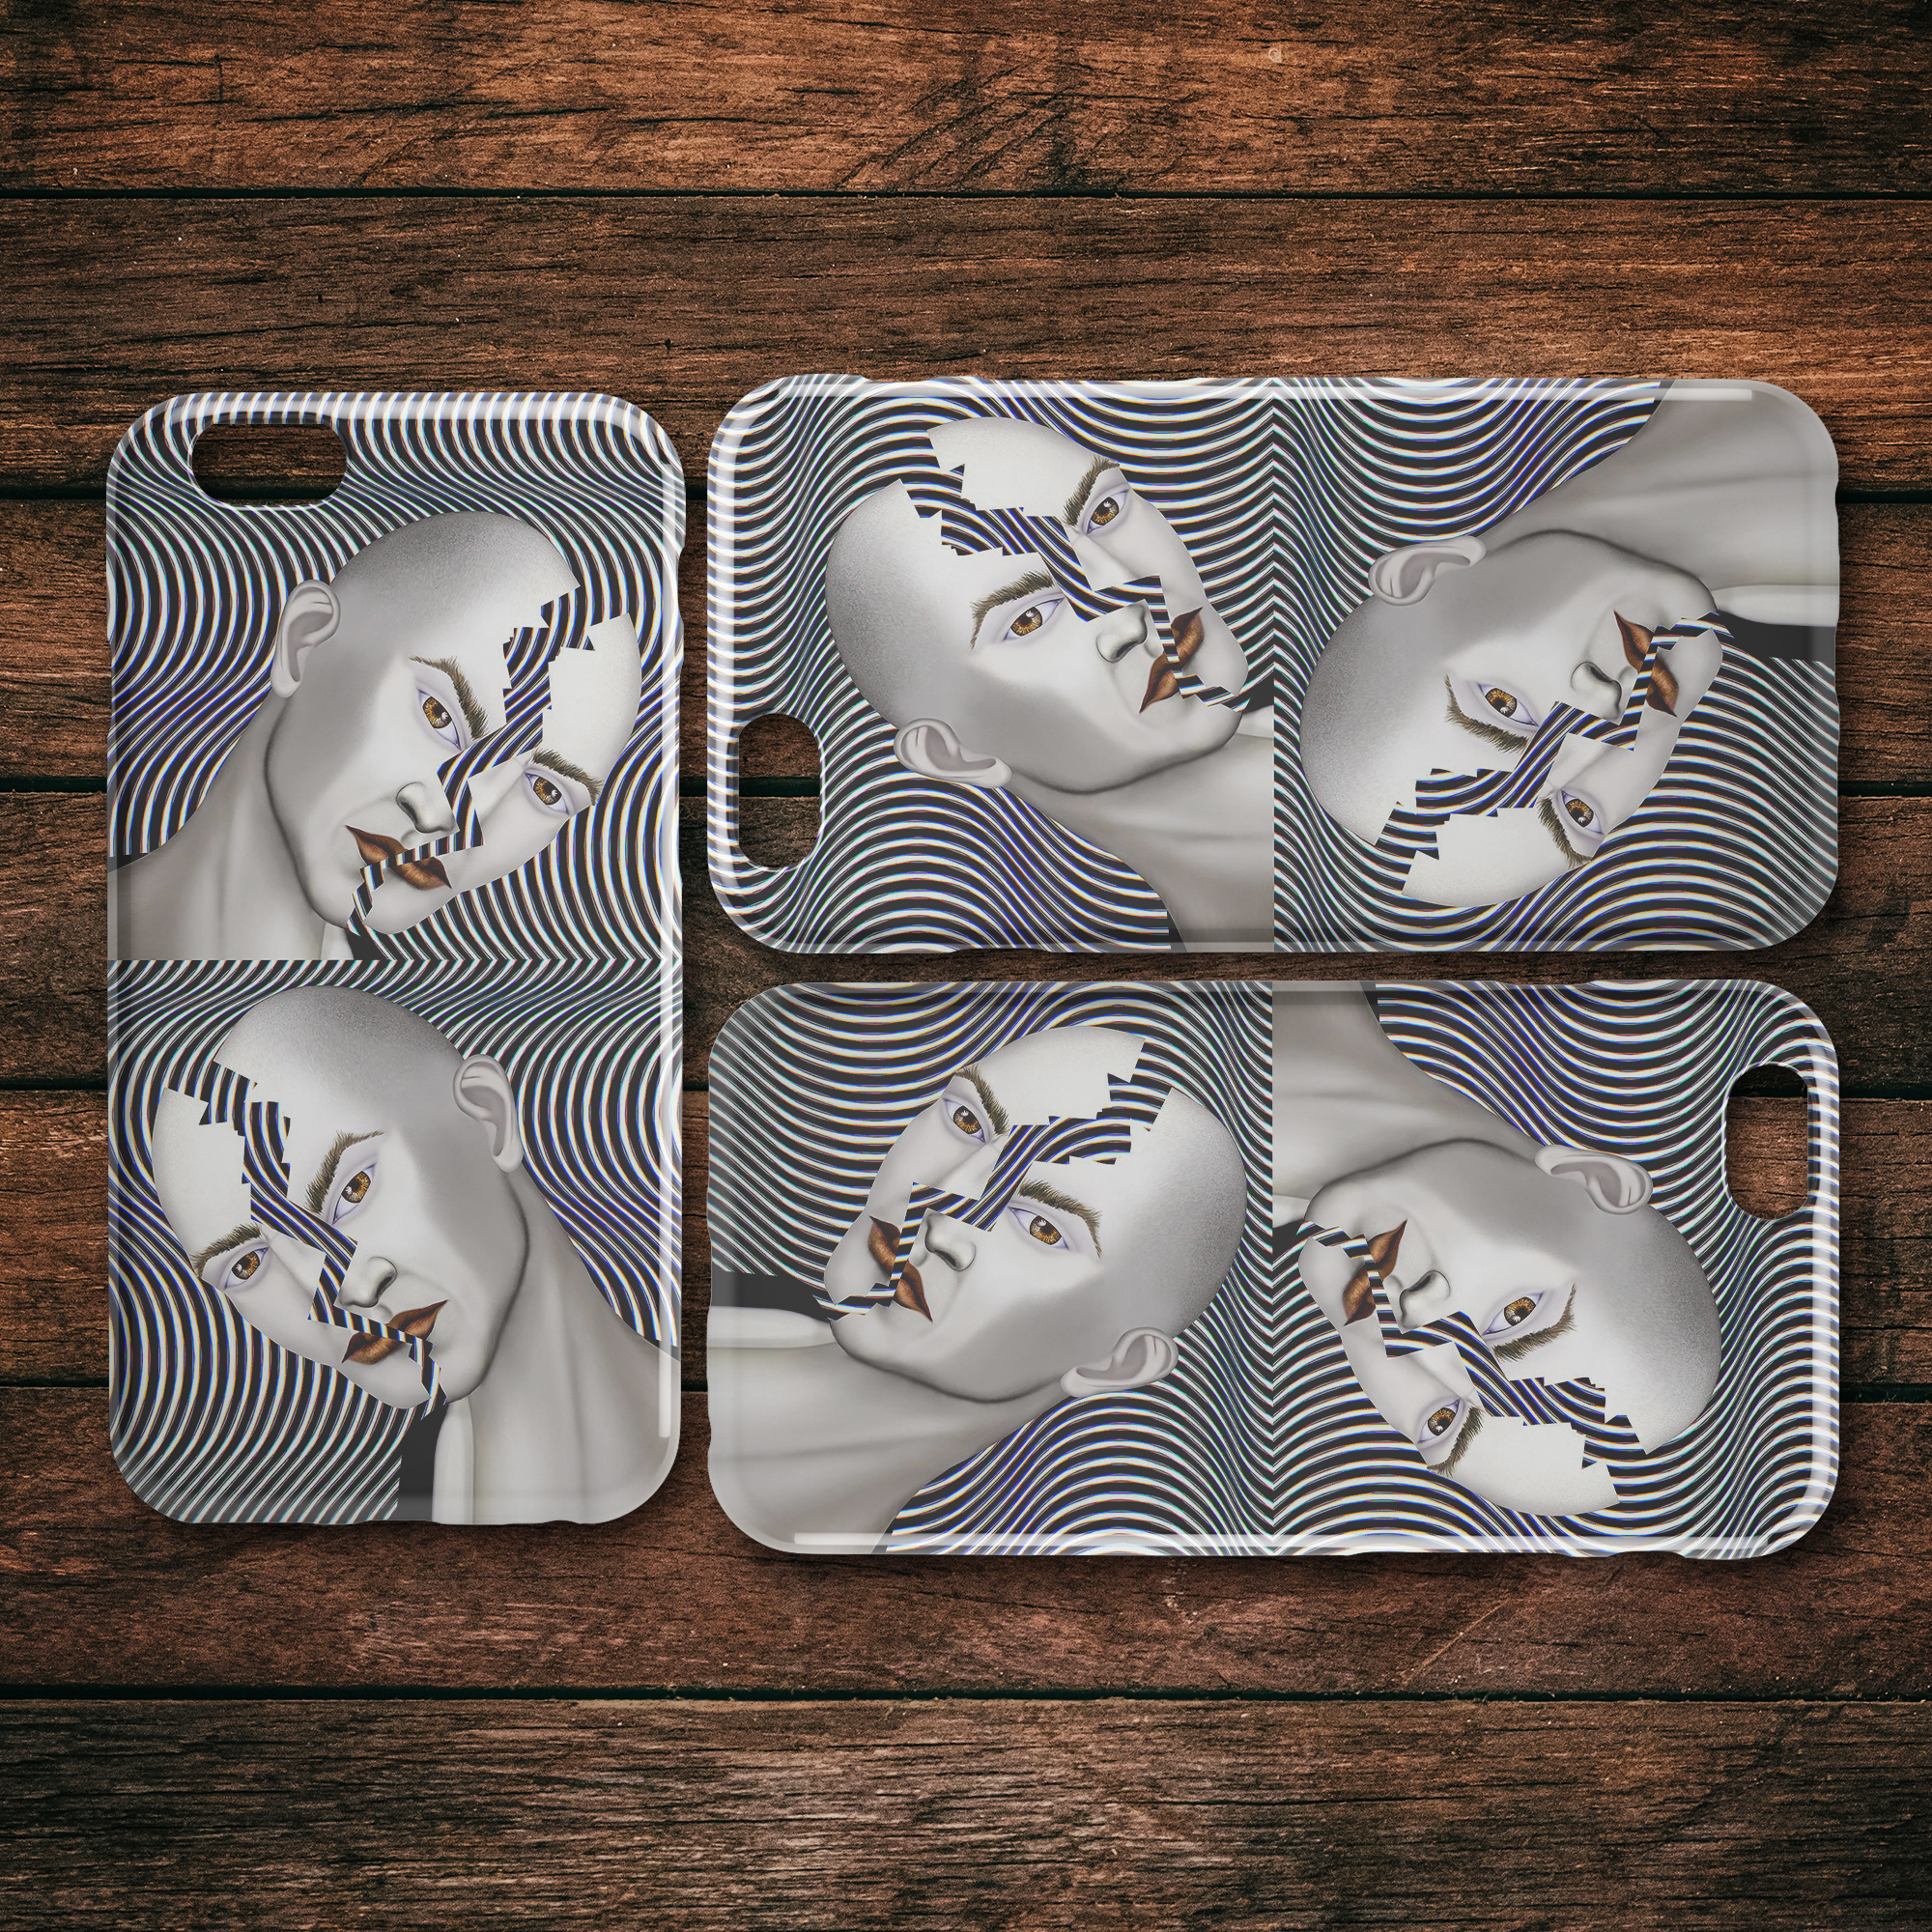 Cracked Until Coffee - iPhone Case